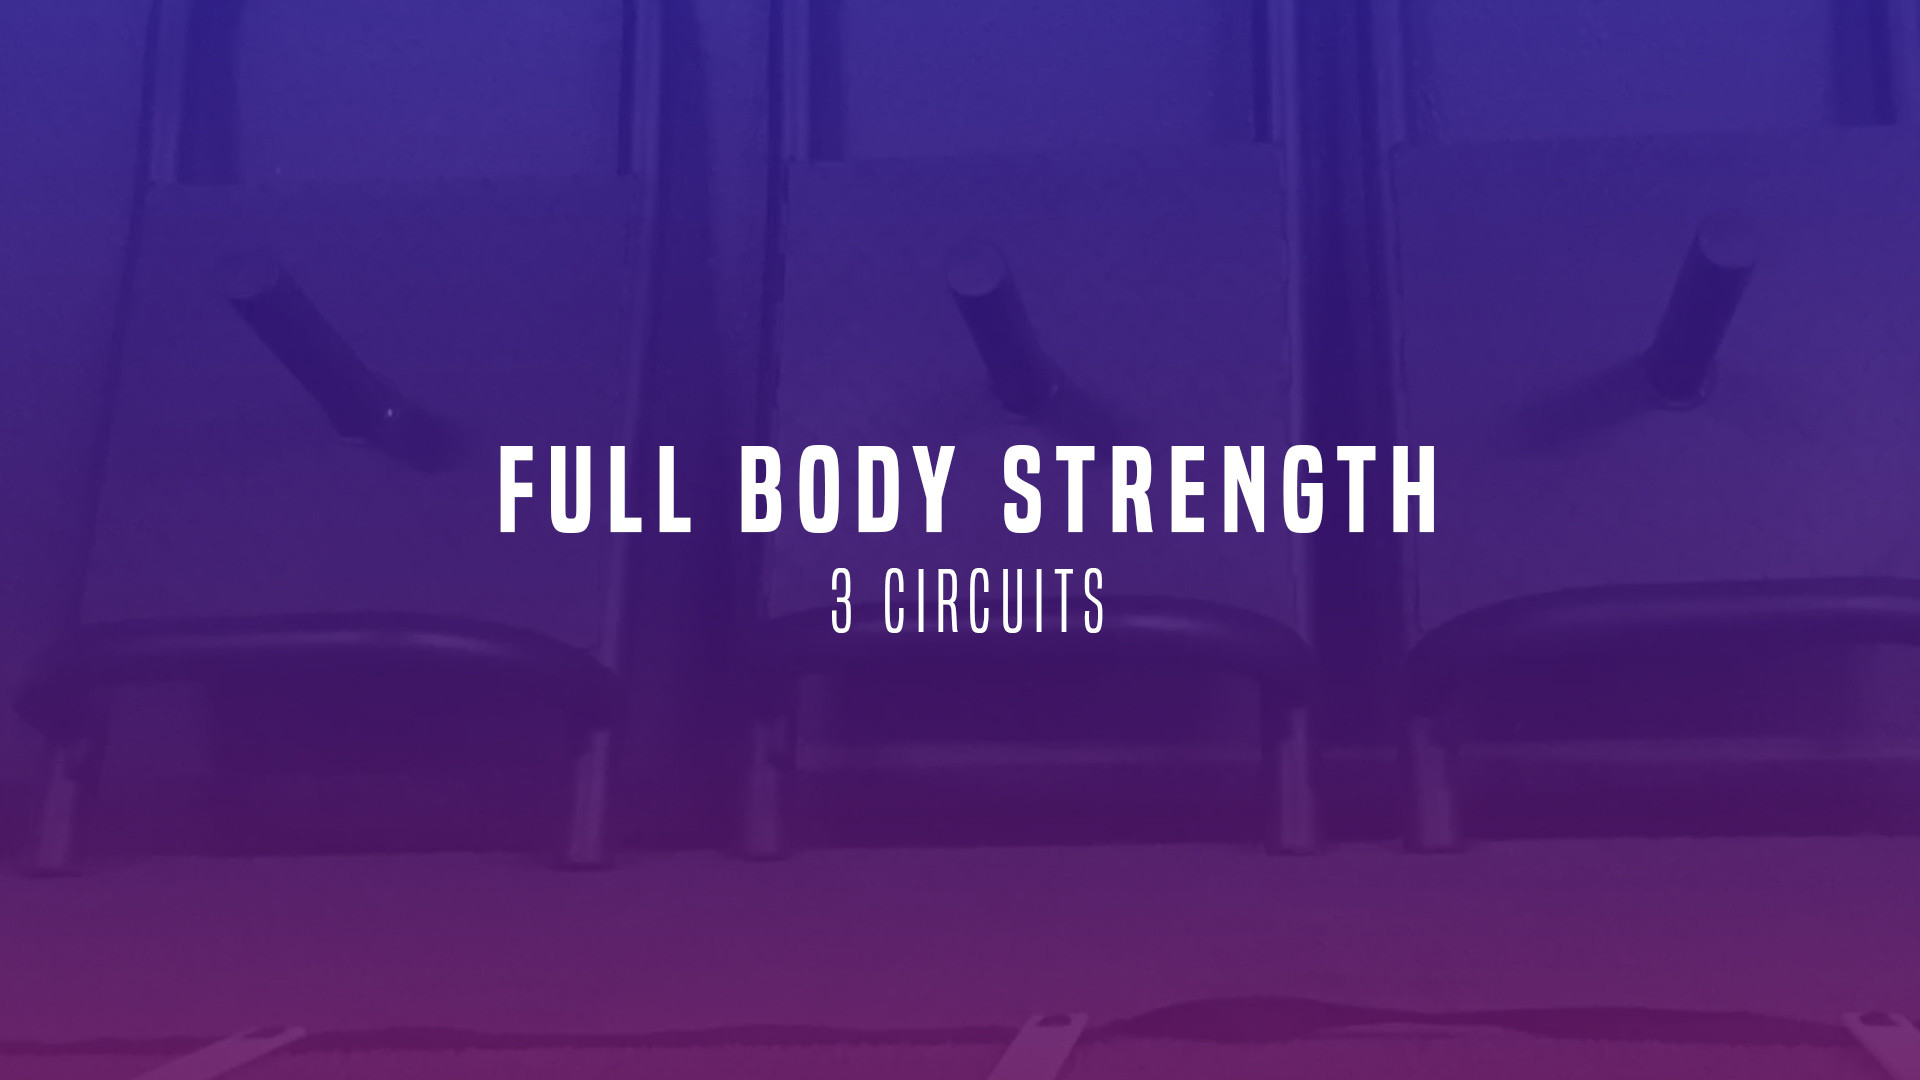 WOD 8: Full Body Strength Day. 3 Circuits.